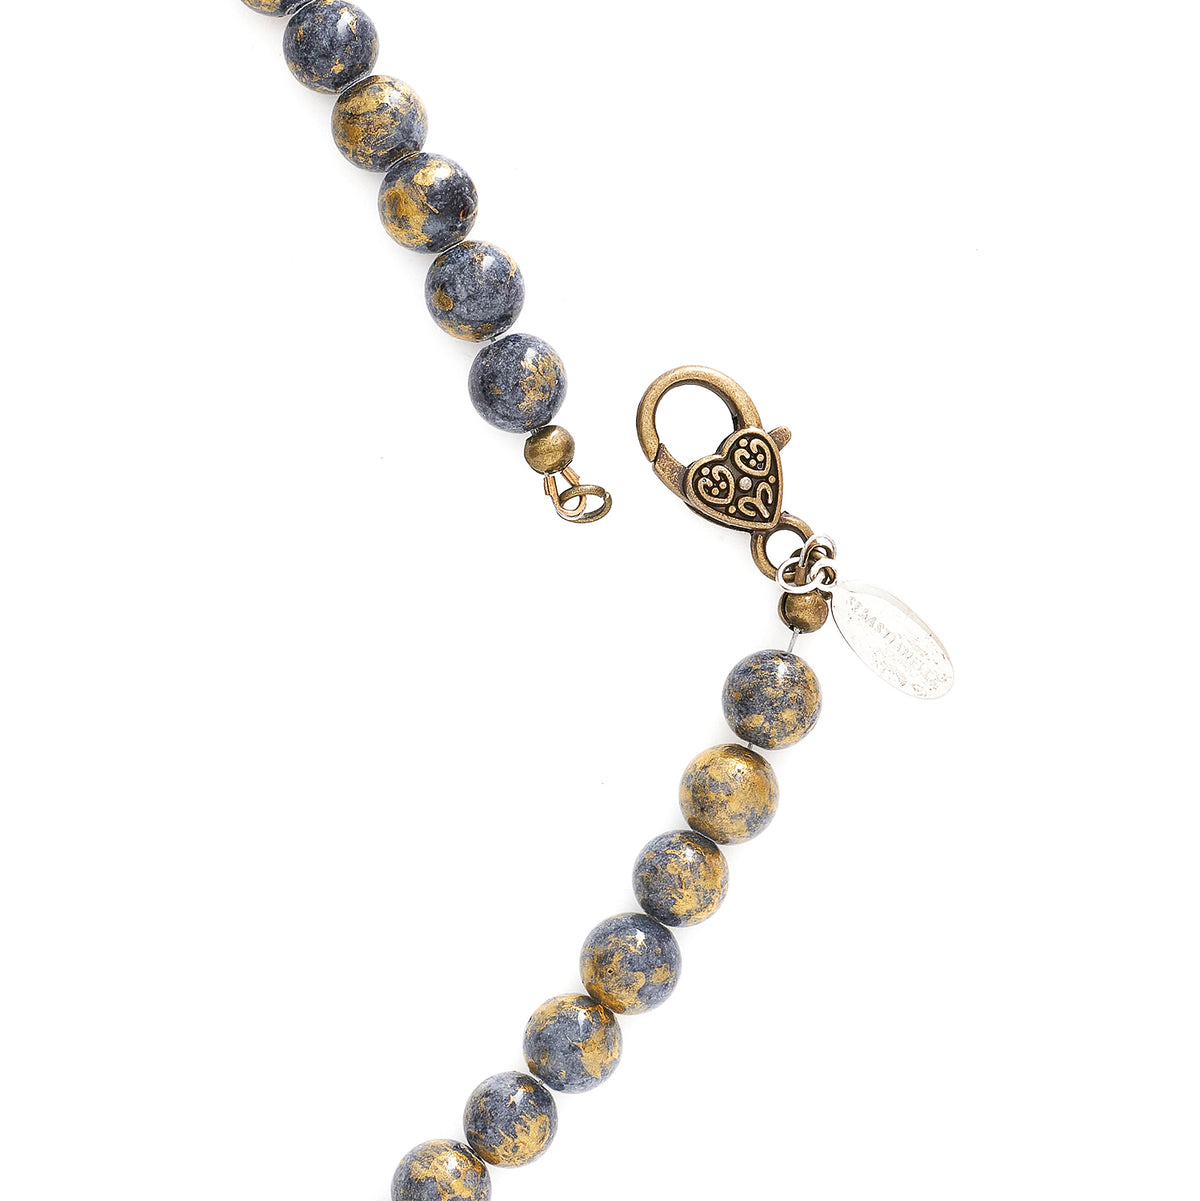 GREY GOLD JADE LONG NECKLACE